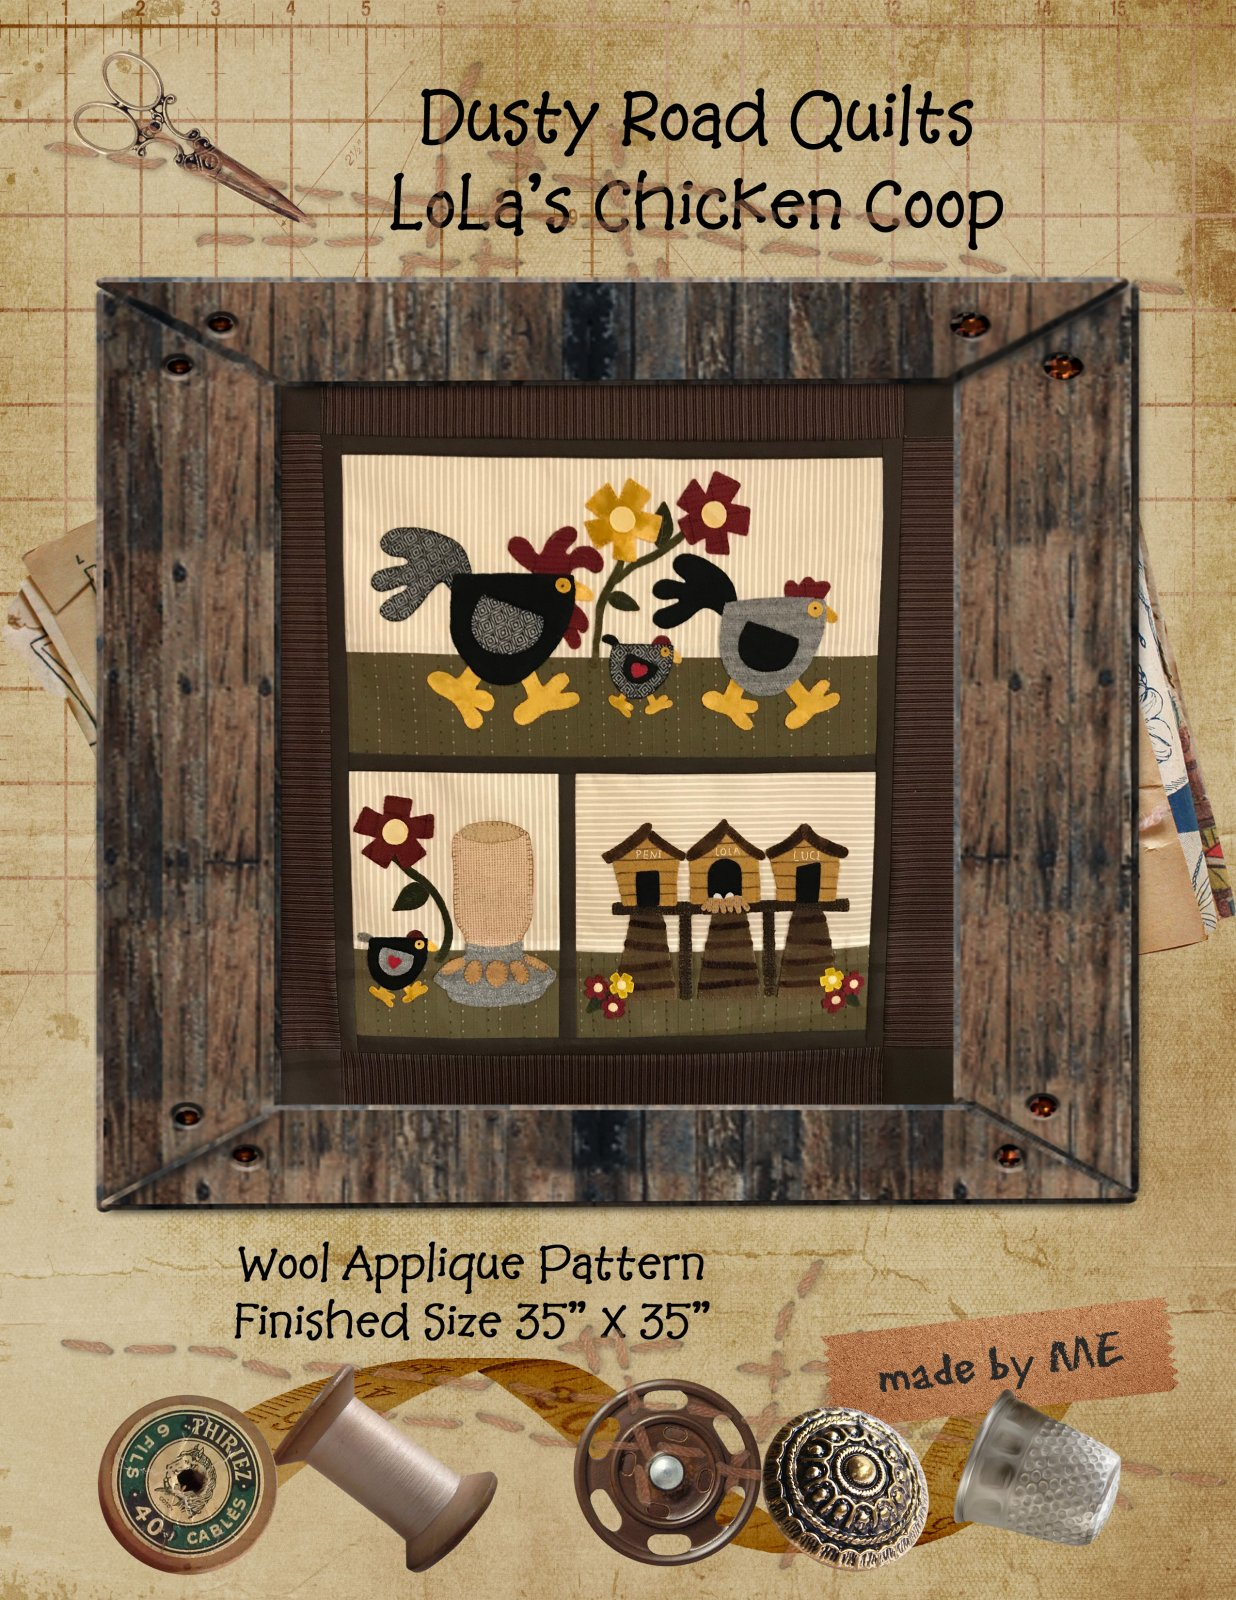 LoLa's Chicken Coop Pattern Only